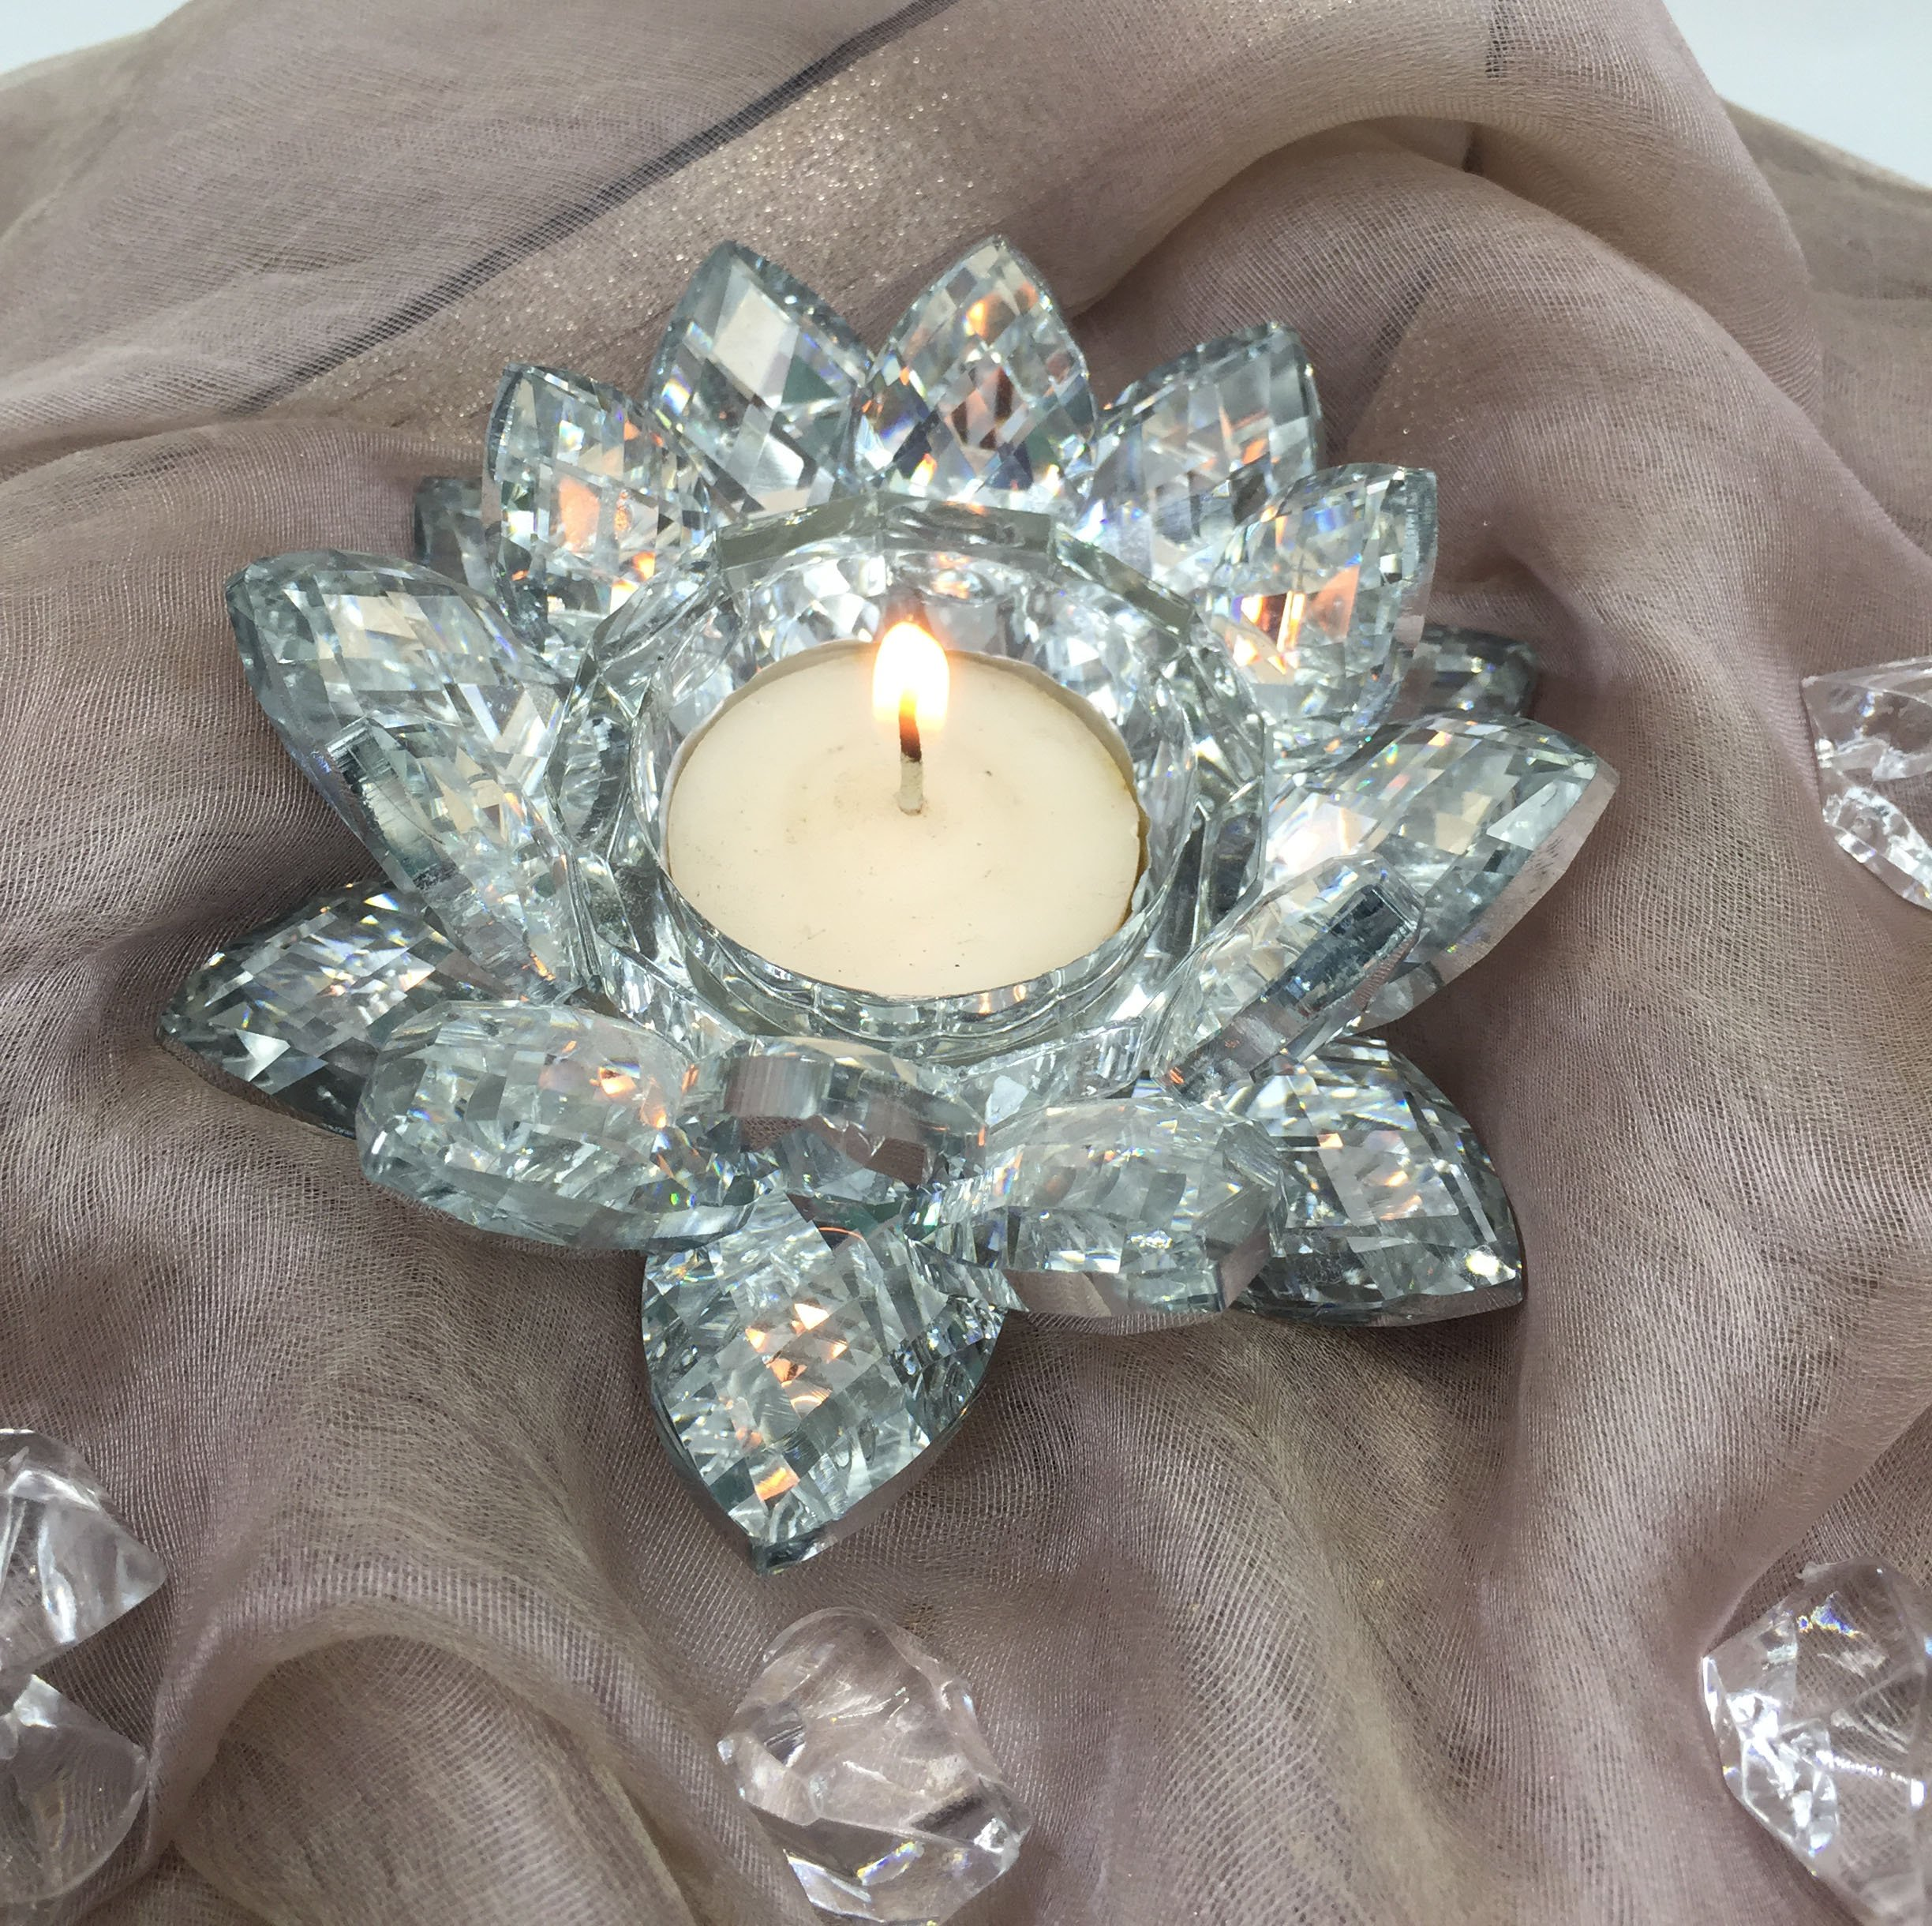 SunRise 4.5 inch Centerpieces Crystal Lotus Candle Holder Collectible Figurine Crystal (Silver) by SunRise (Image #2)